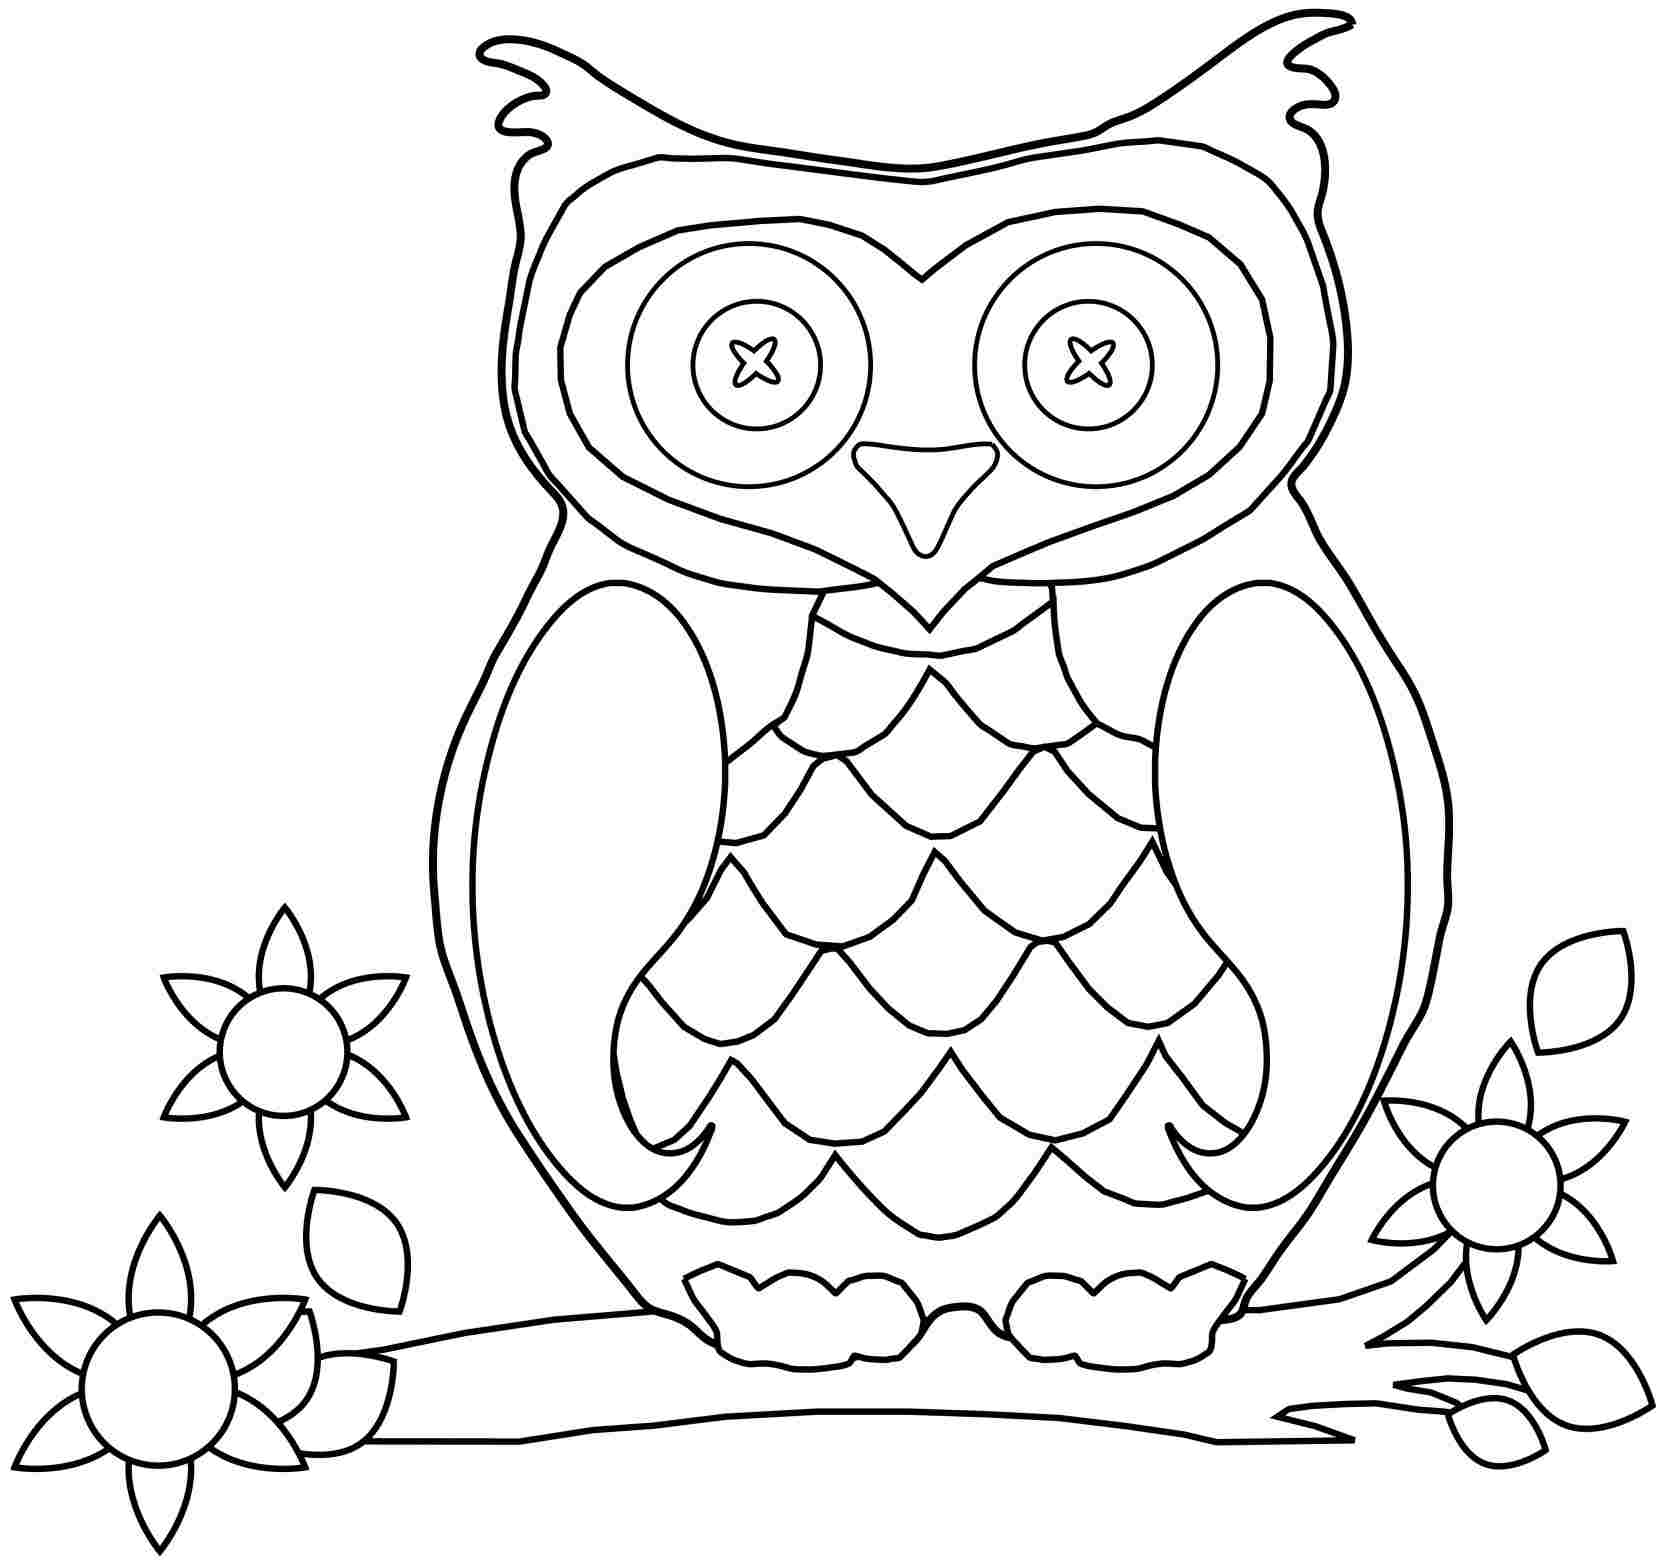 printable owl images 10 difficult owl coloring page for adults printable images owl